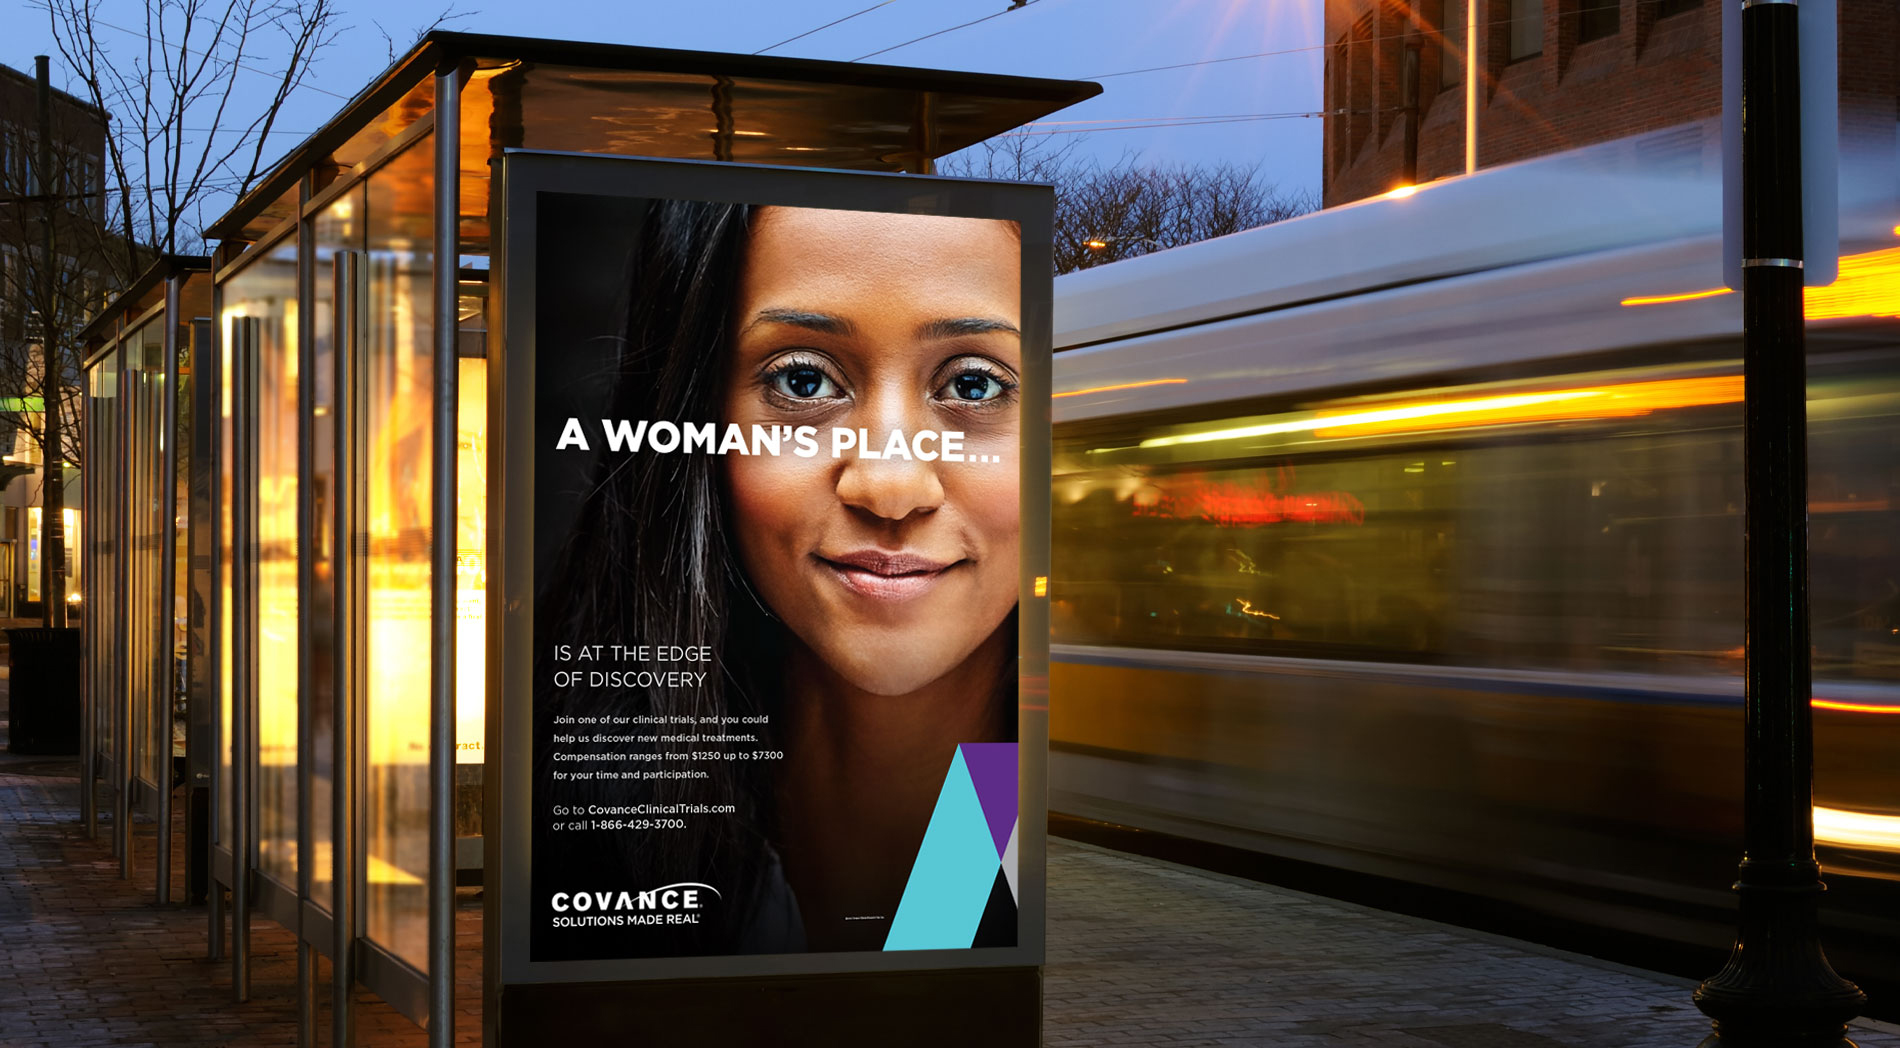 Covance bus shelter ad: A woman's place is at the edge of discovery